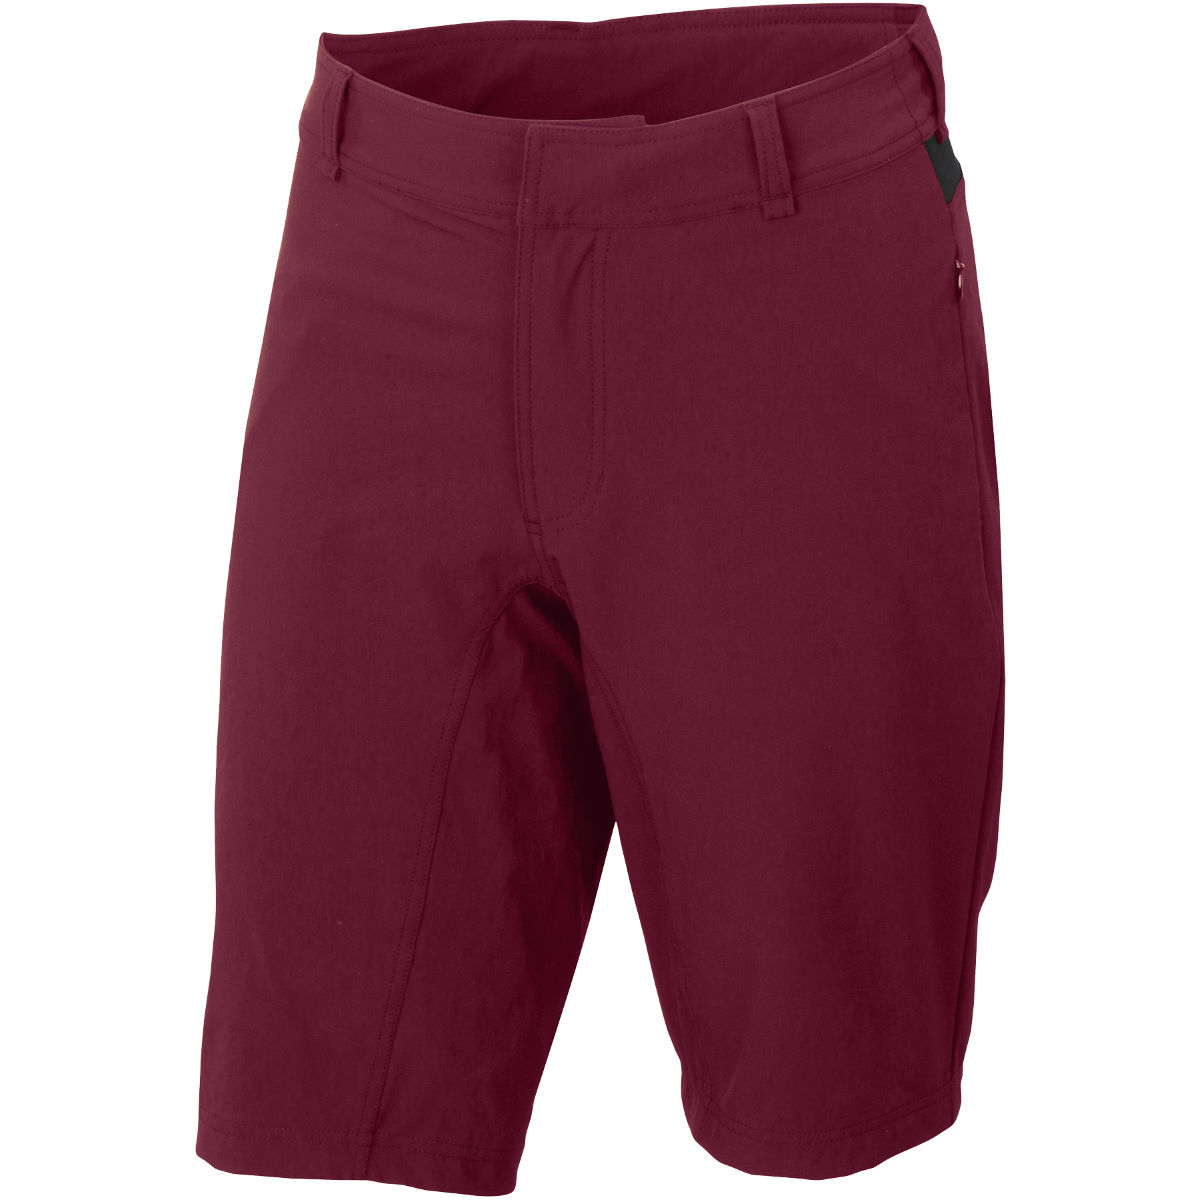 Sportful Giara Over Shorts - S Red Wine  Baggy Shorts